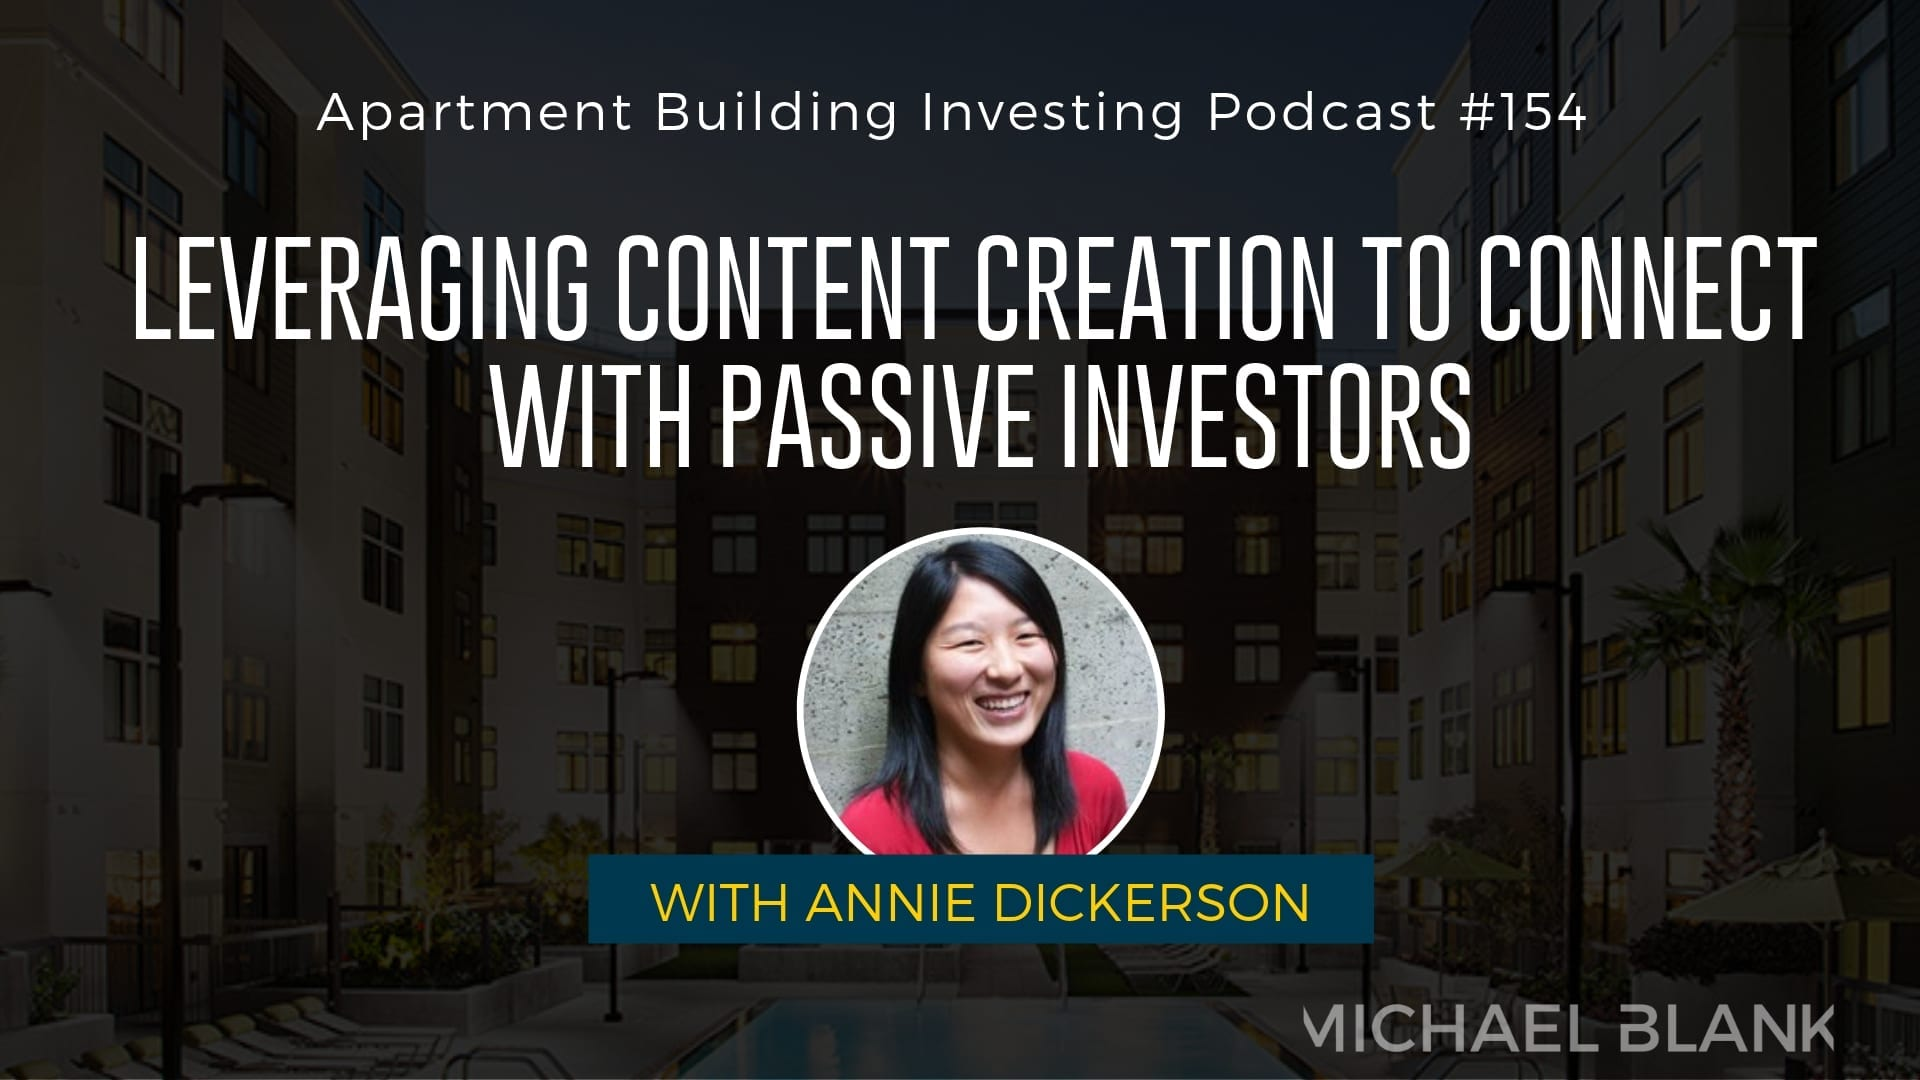 MB 154: Leveraging Content Creation to Connect with Passive Investors – With Annie Dickerson